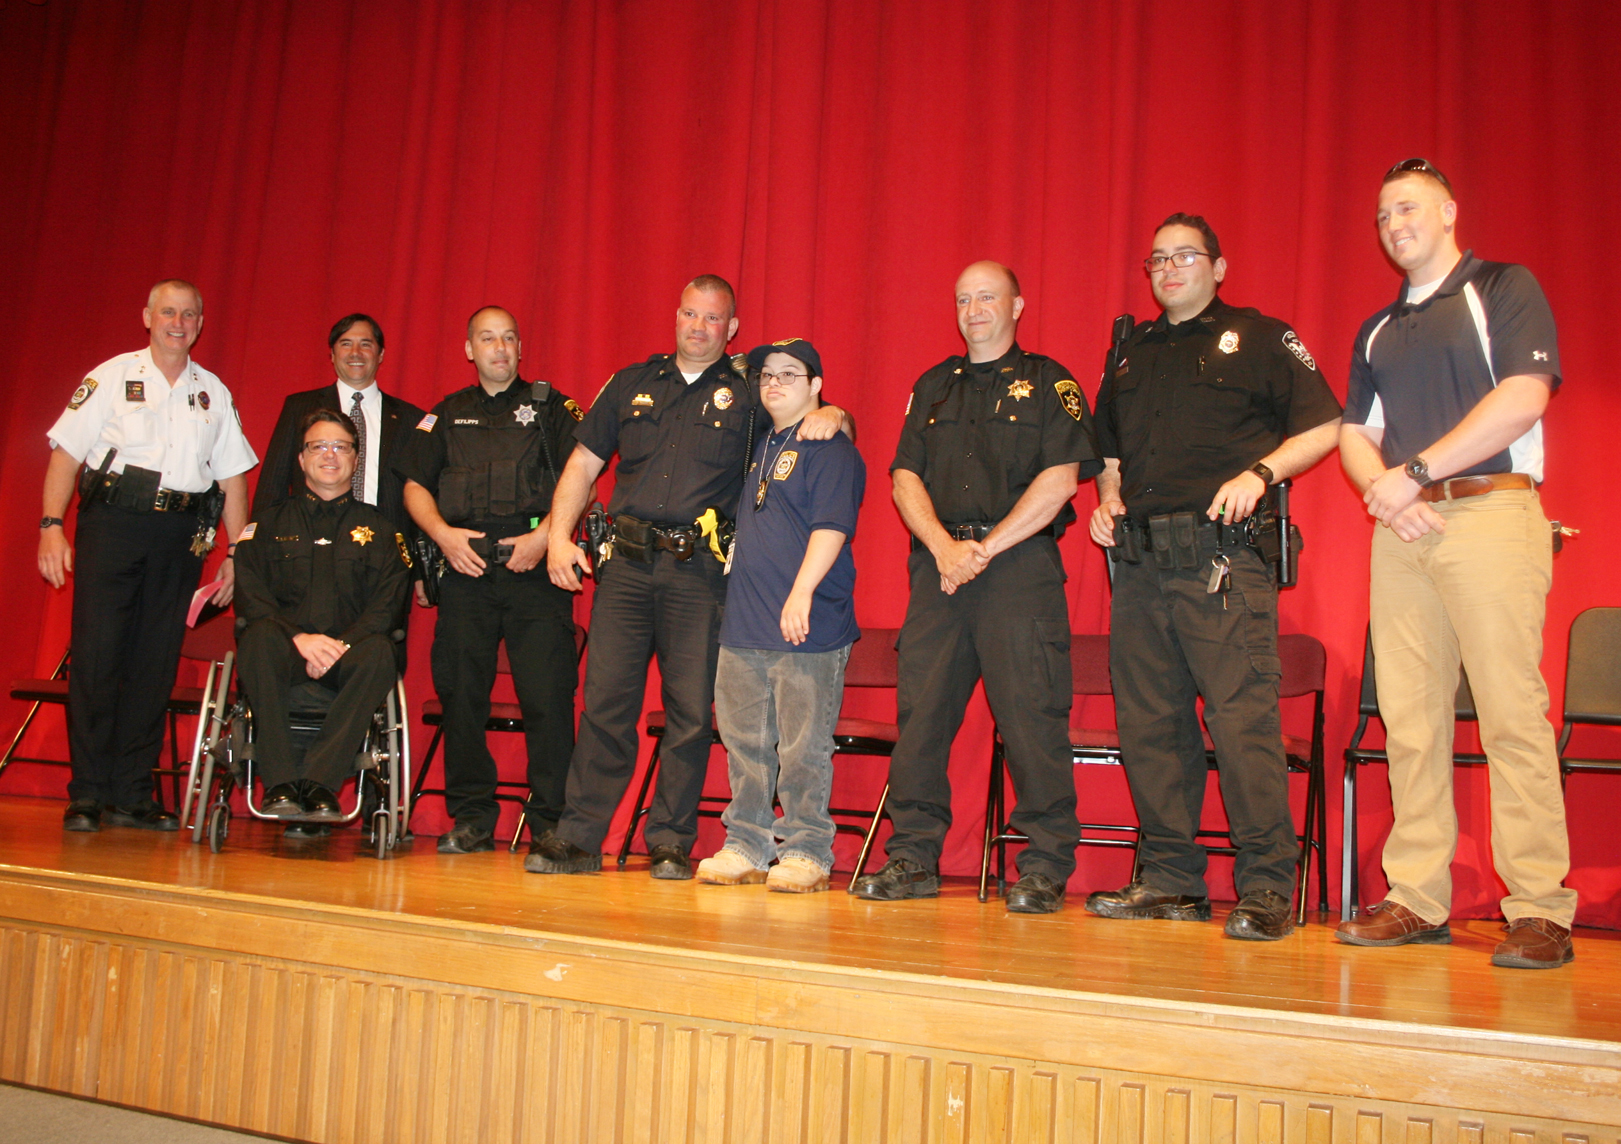 "(L-r) Gates Police Chief James VanBrederode, Gates Town Supervisor Mark Assini, Orleans County Sheriff Randy Bower, Orleans County Deputy James DeFilipps, Gates Police Officer Shawn O'Mara, ""Officer Nick"" Pifer, Orleans County Chief Deputy Michael Mele, Holley Police Officer Miguel Bermudez and Gates Police Officer Ed Bower. Provided photo"